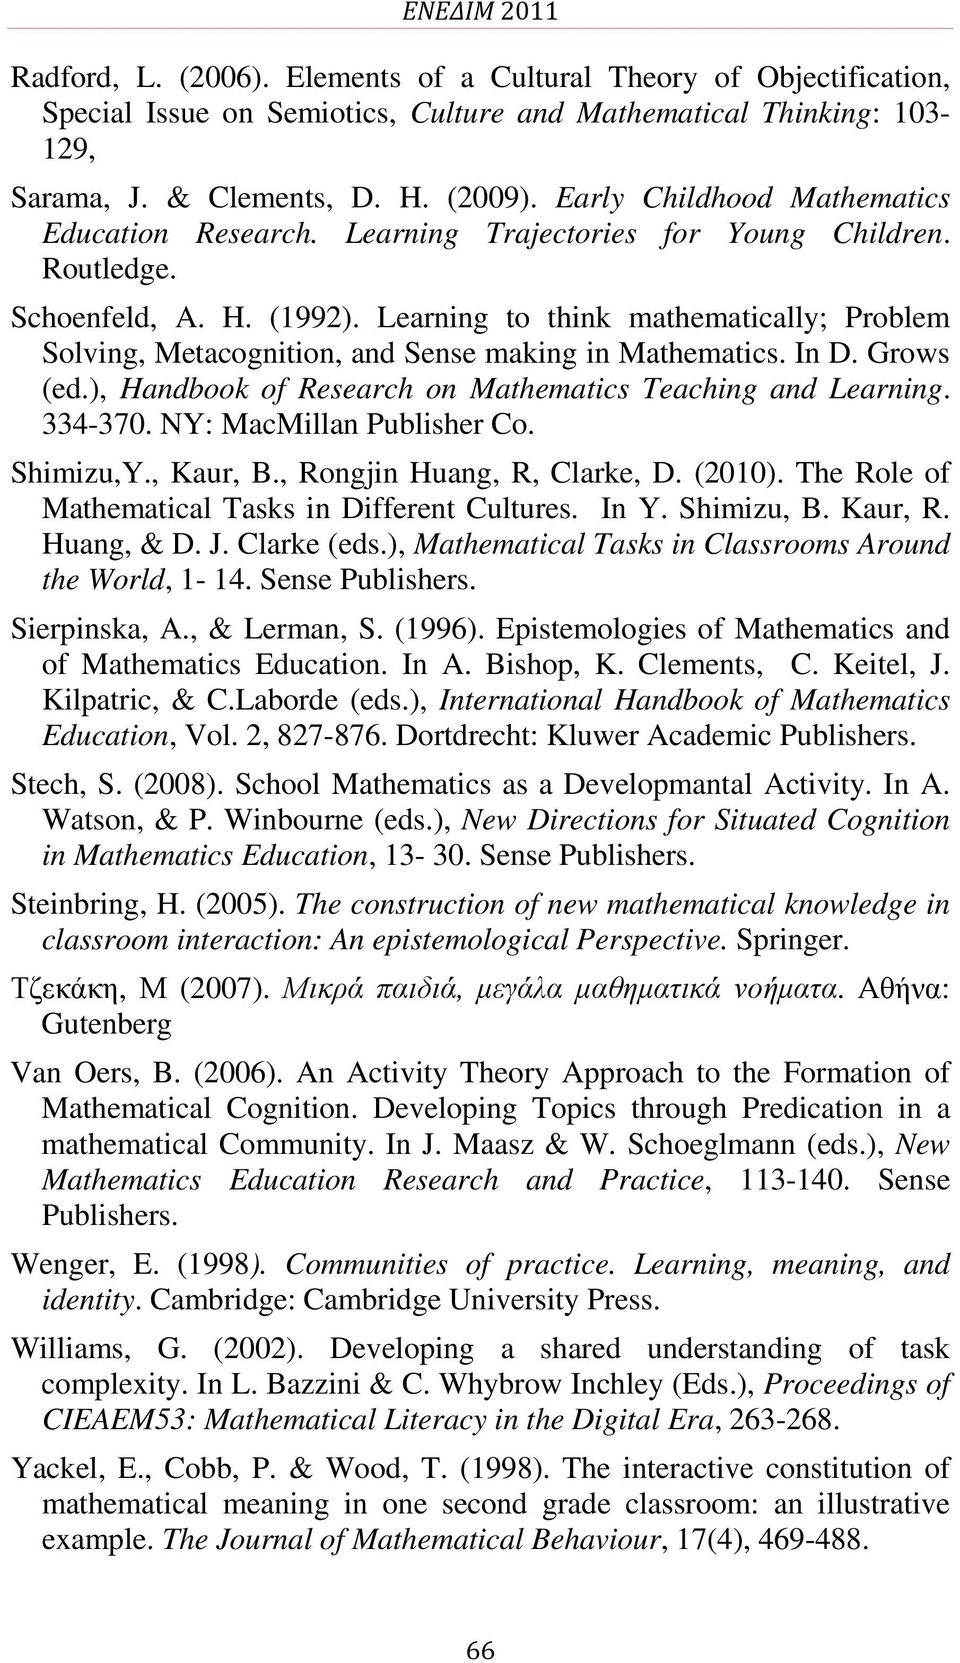 Learning to think mathematically; Problem Solving, Metacognition, and Sense making in Mathematics. In D. Grows (ed.), Handbook of Research on Mathematics Teaching and Learning. 334-370.